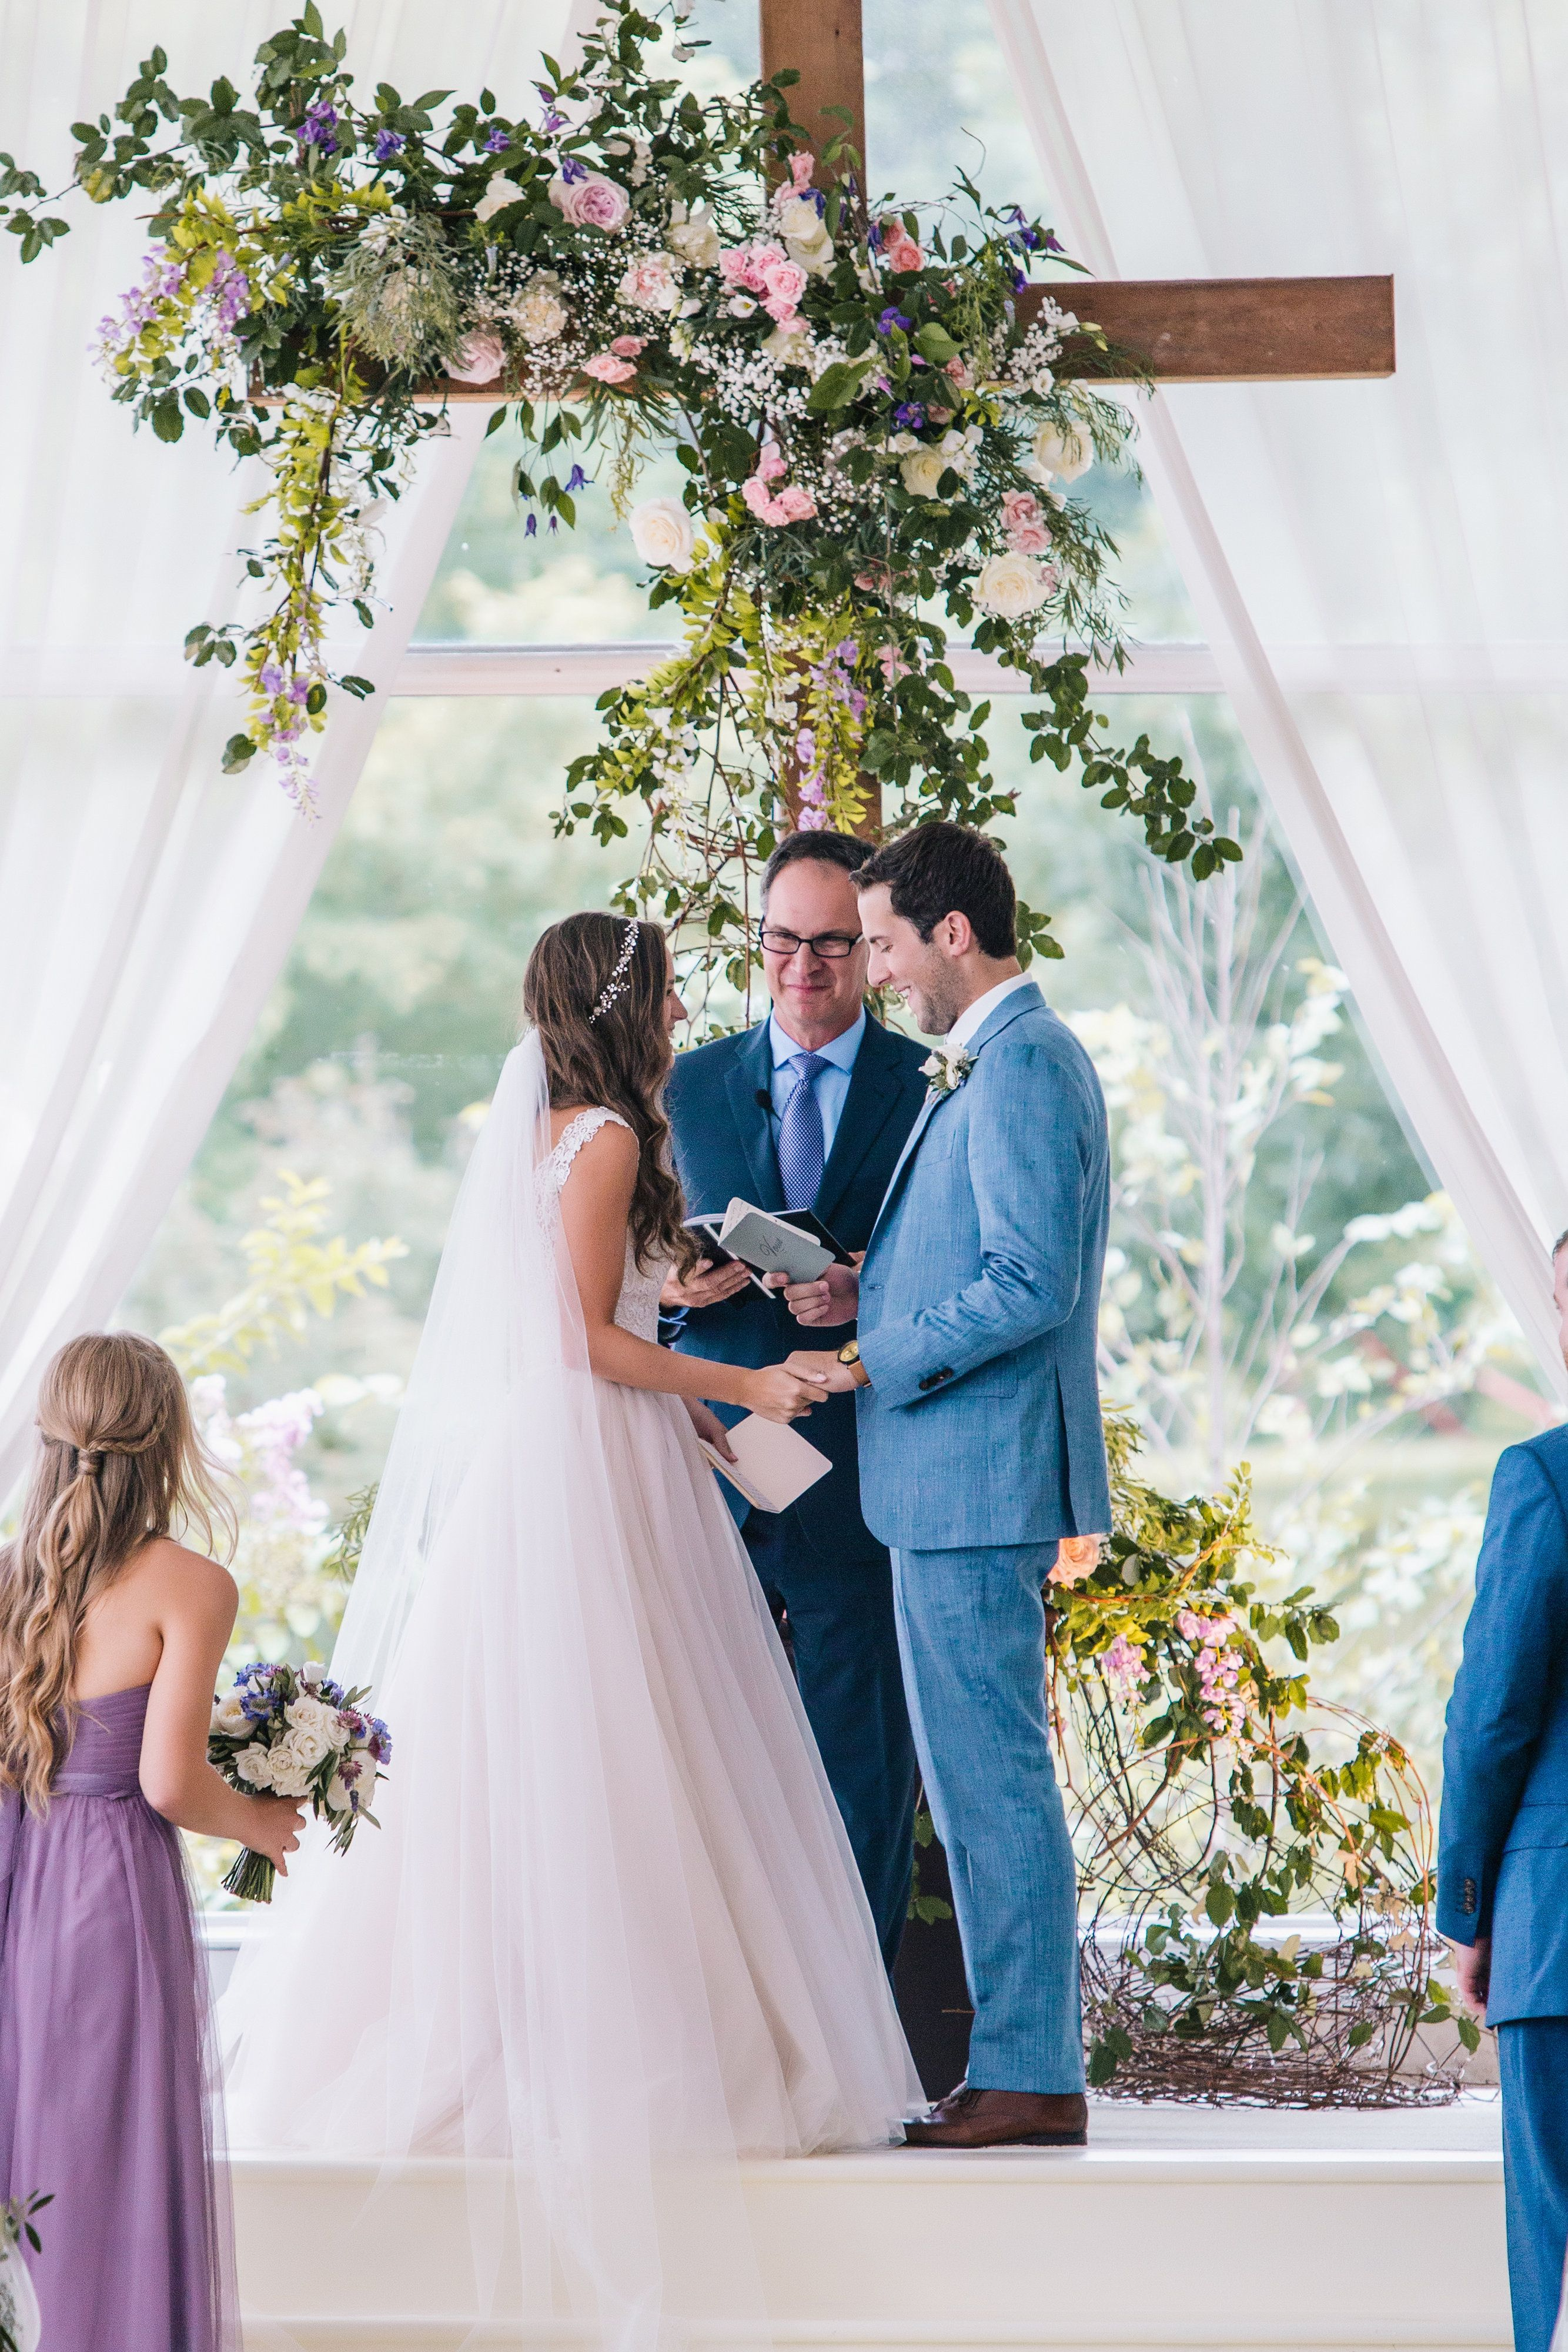 Taylor and Eric. Wedding Planning by Susan Graham Signature Events. Photo by VUE Photography.